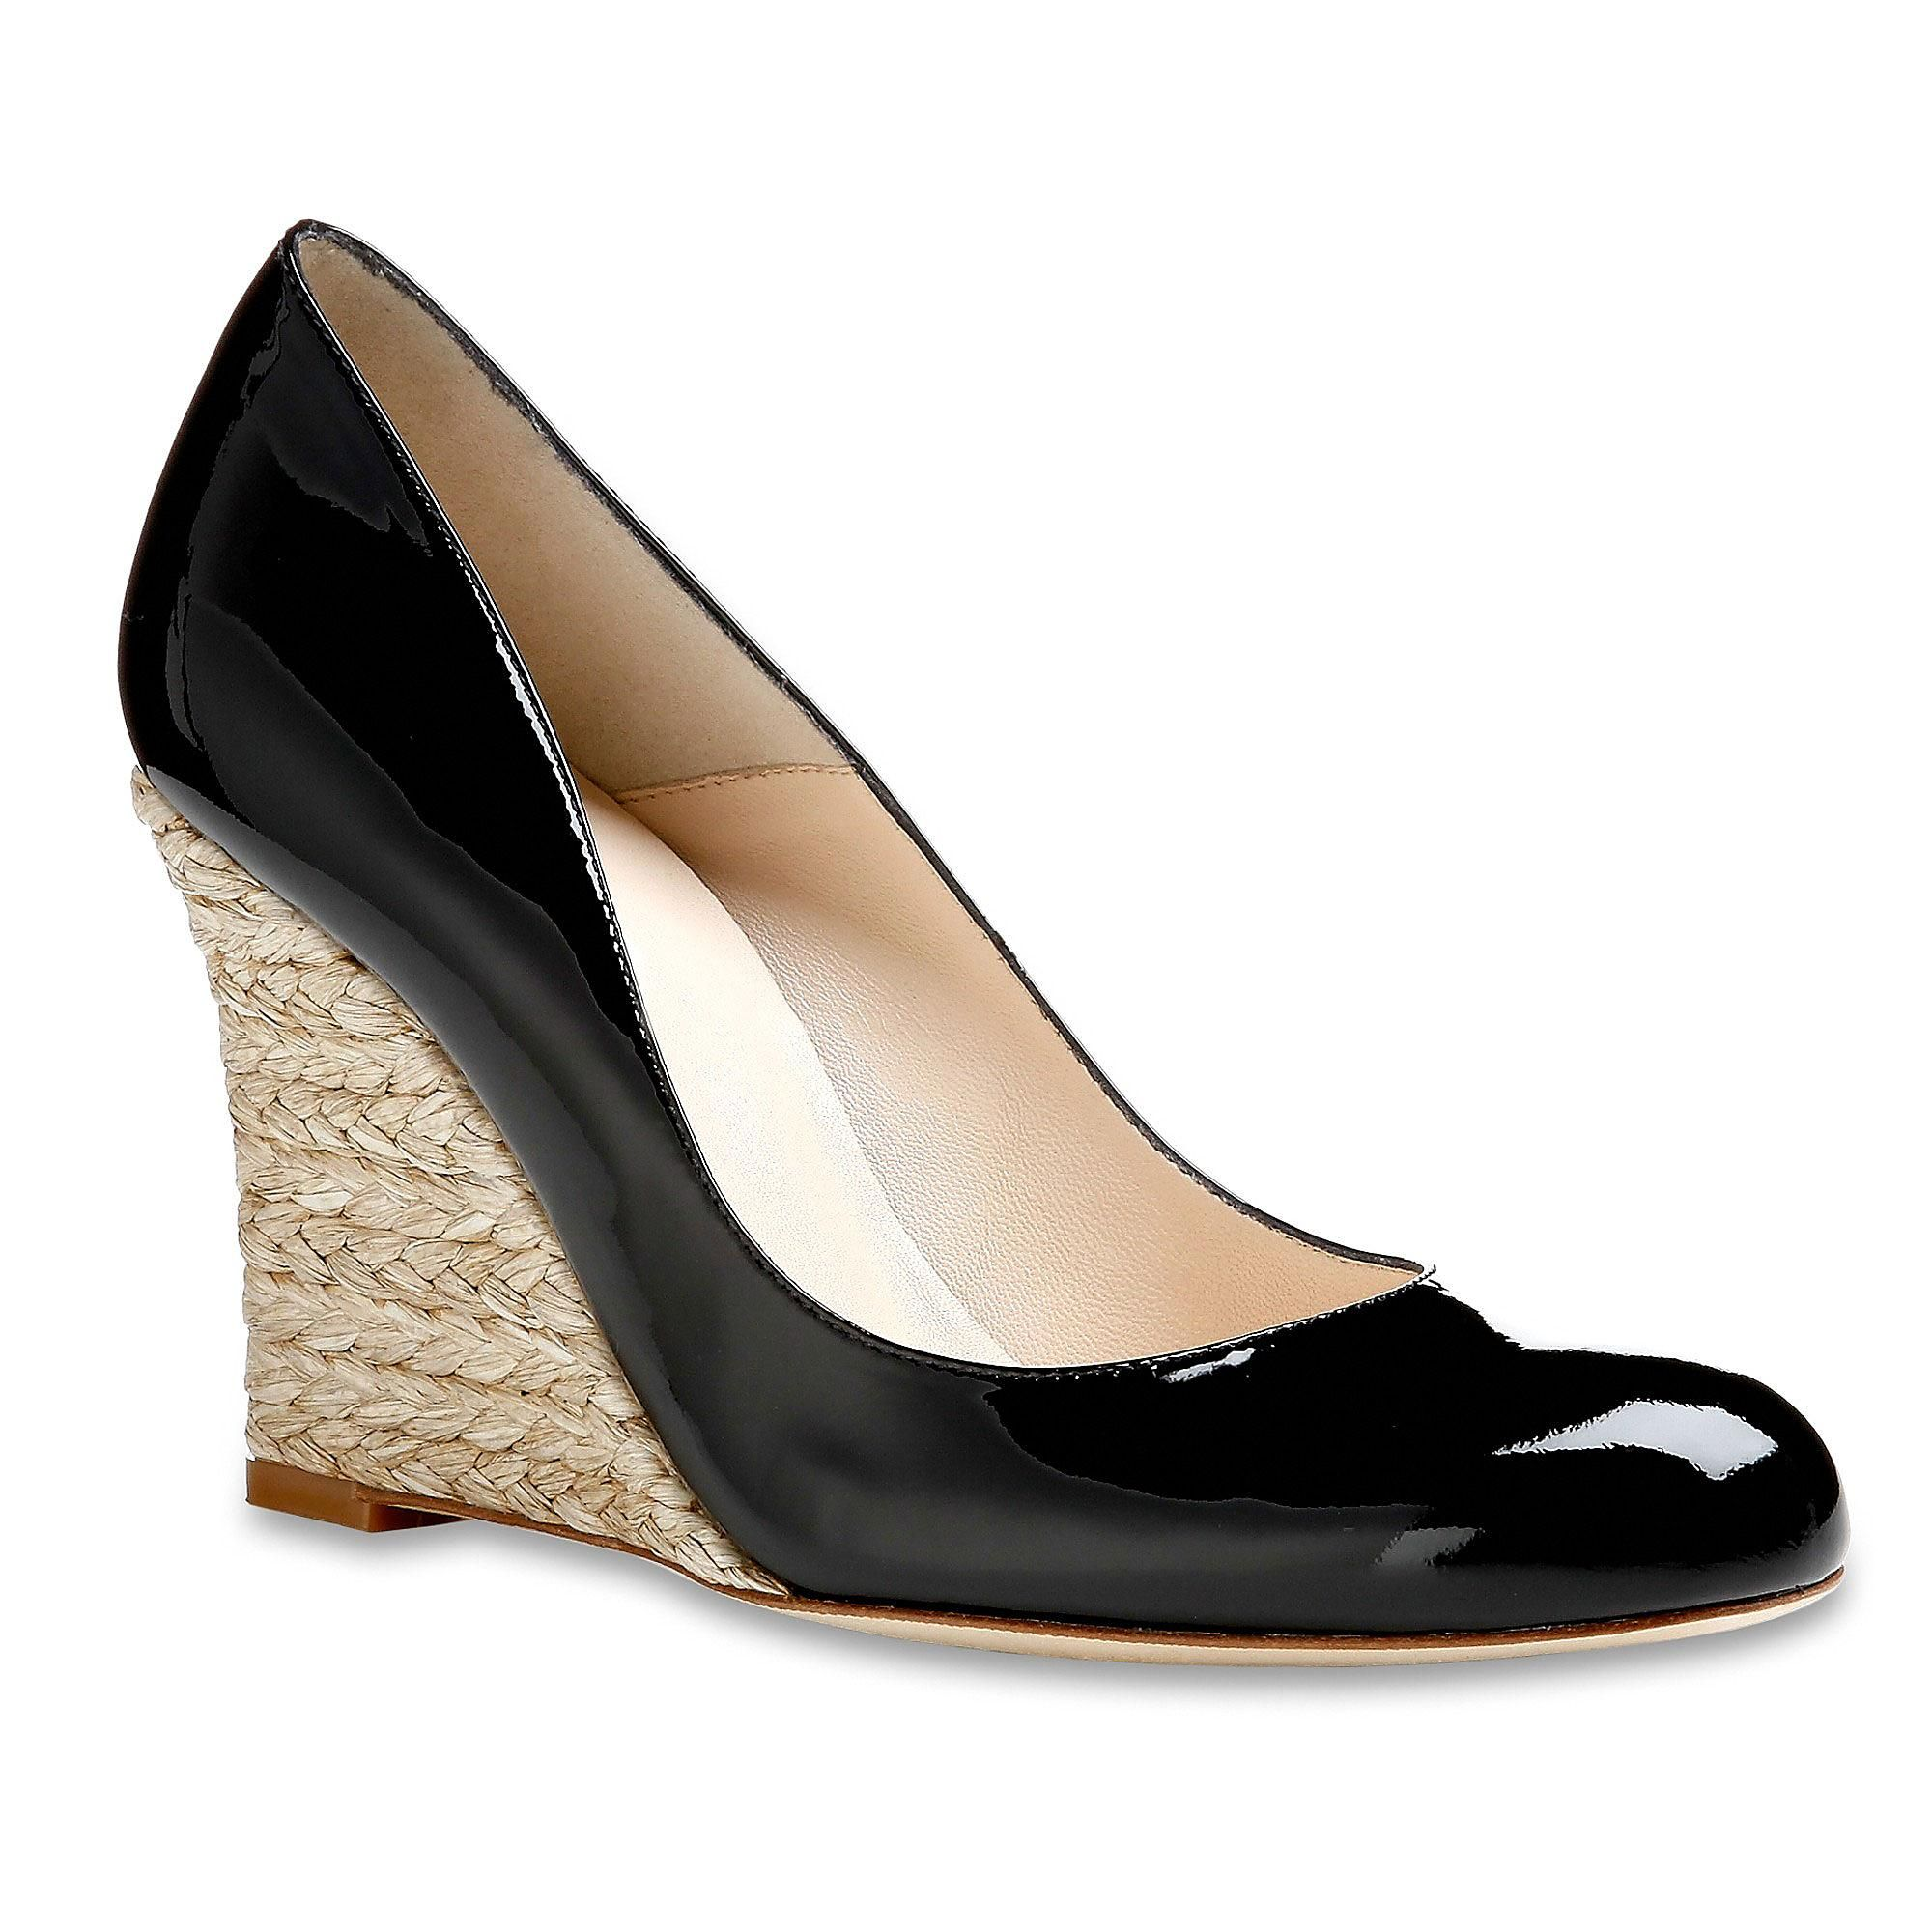 shoes, Court shoes, Kate middleton shoes